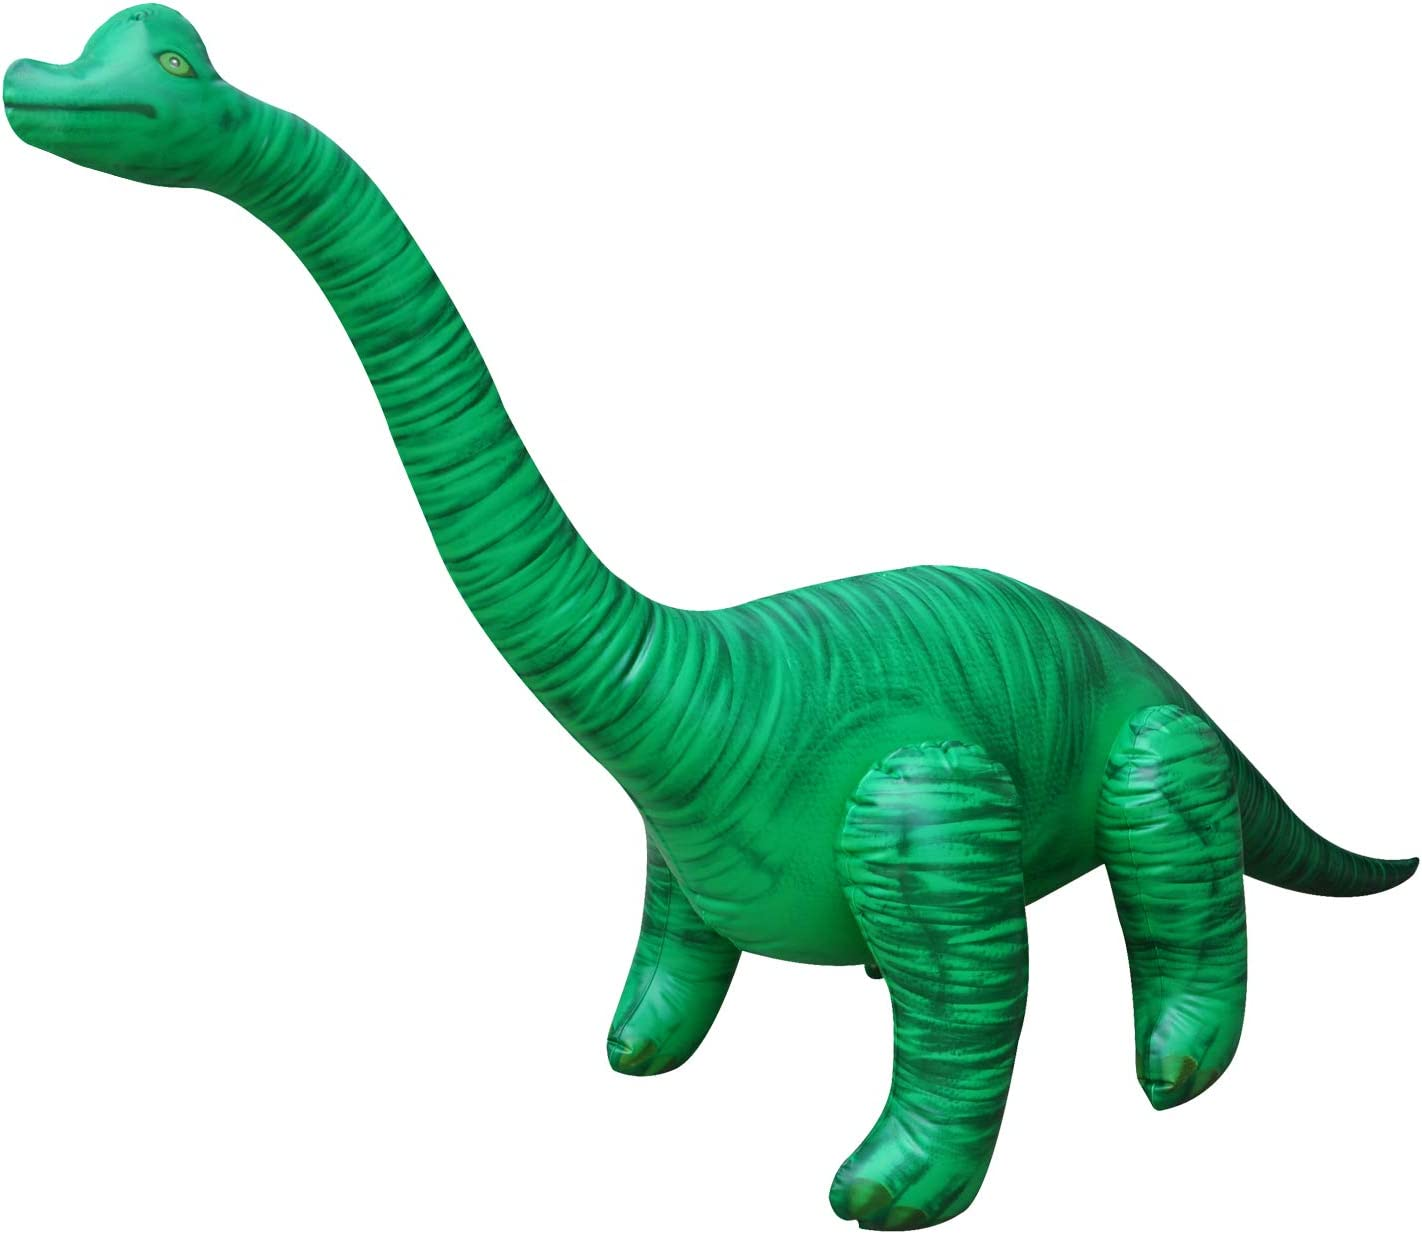 Jet Creations Inflatable Brachiosaurus Dinosaur, 48 inch Long-Great for Pool, Party Decoration, Birthday for Kids and Adults DI-BRAC4